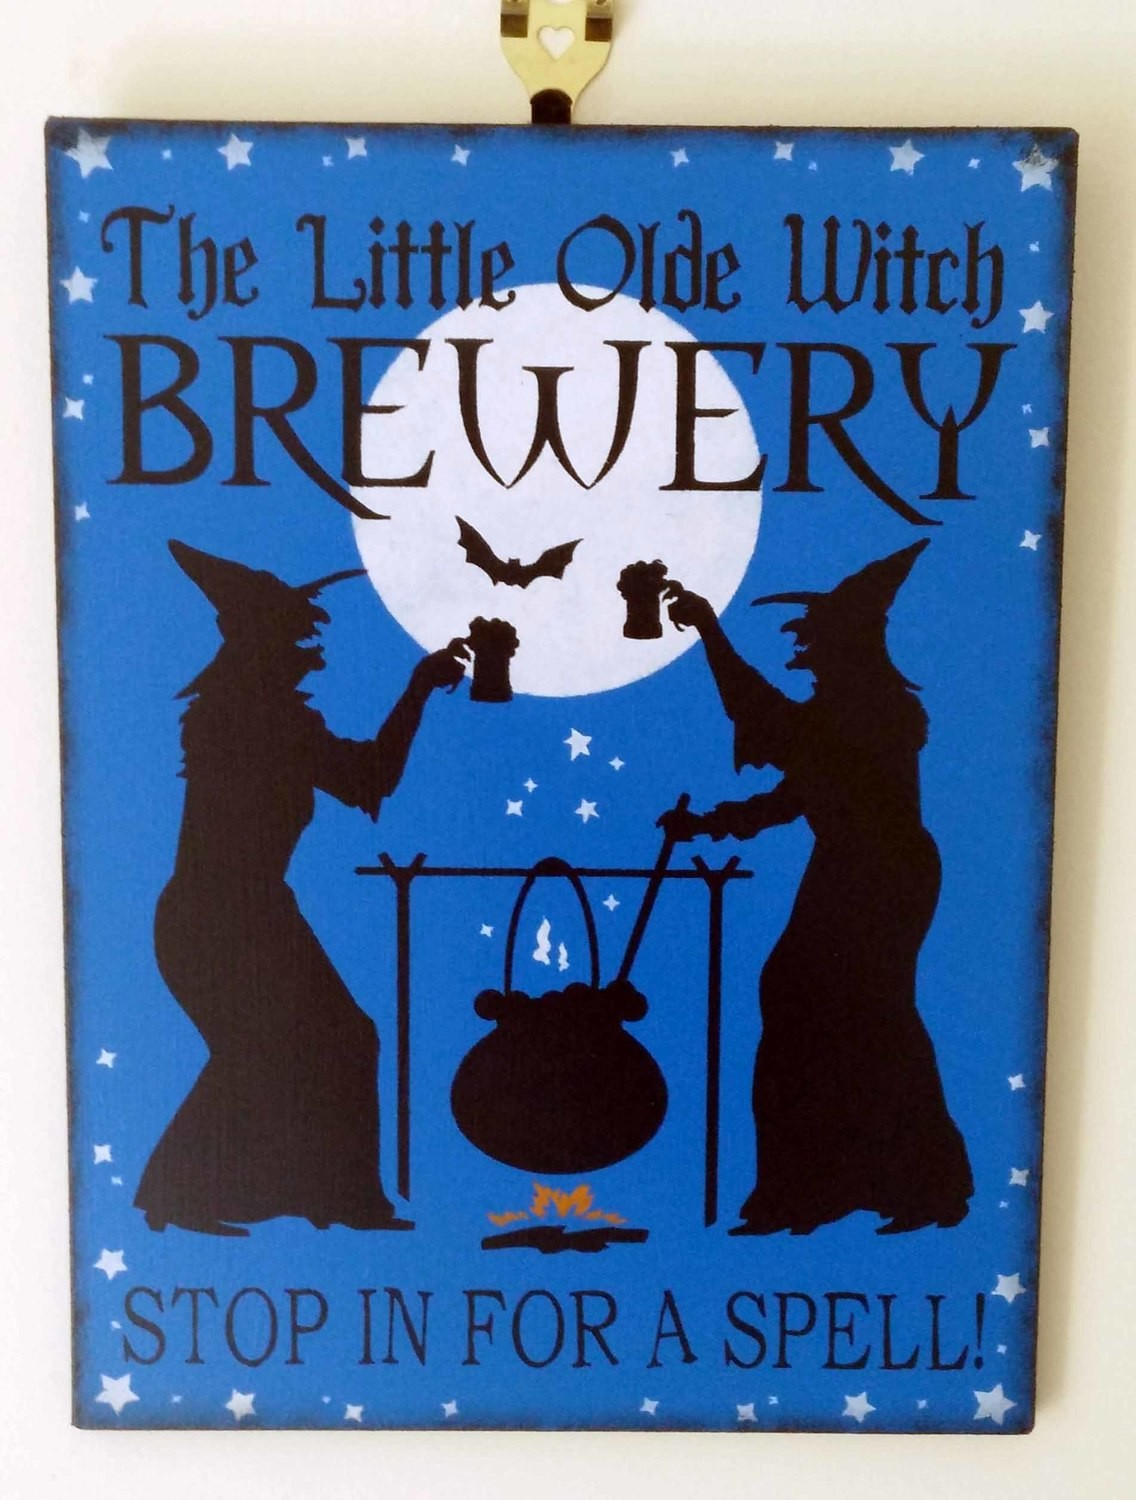 The Little Olde Witch Brewery Wooden Sign - Blue